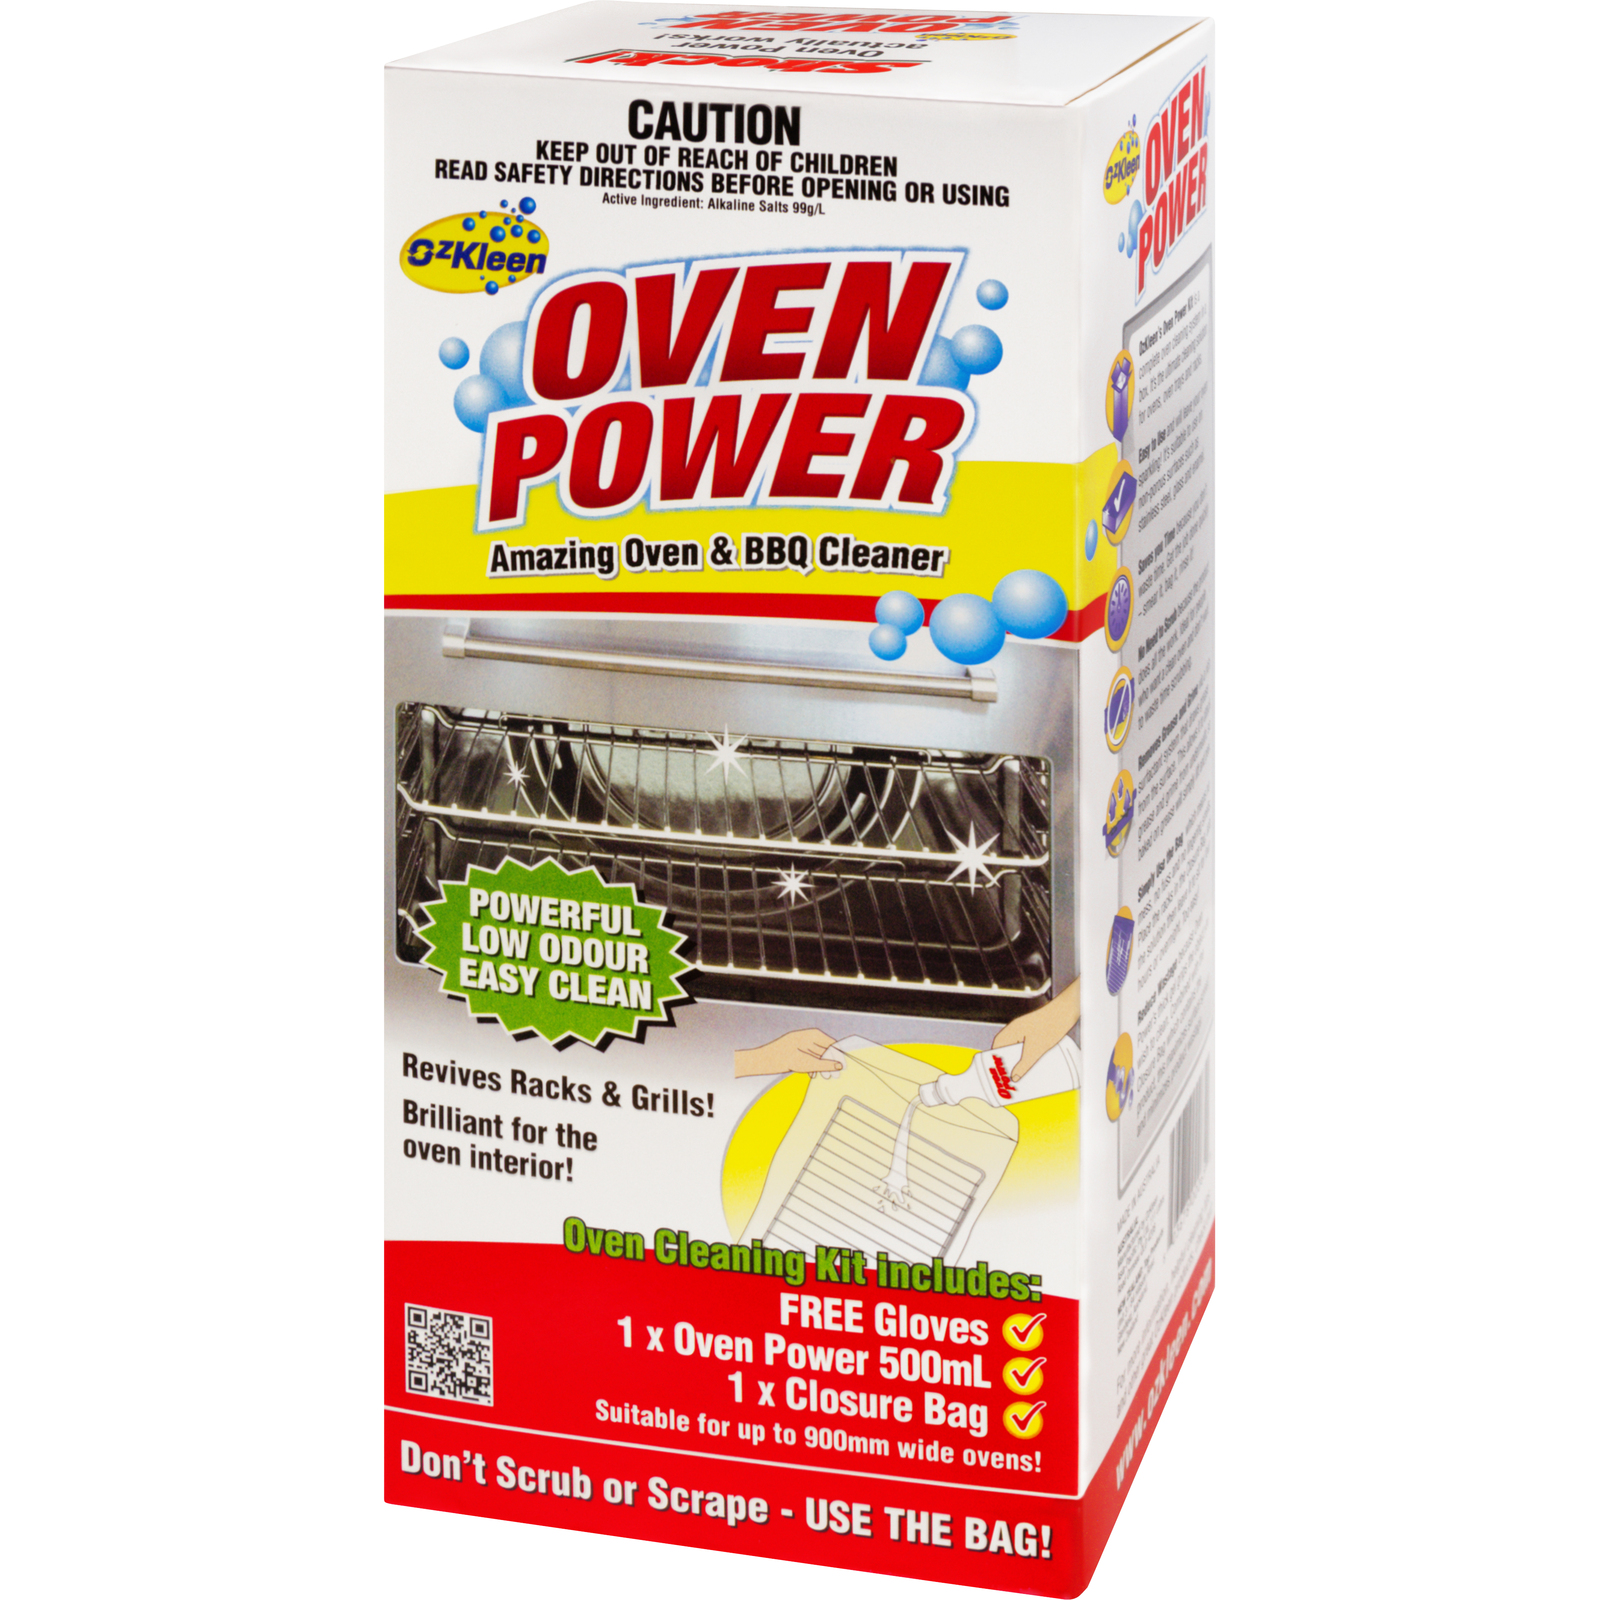 Pet Insurance Companies >> OzKleen Oven Power Reviews (page 3) - ProductReview.com.au